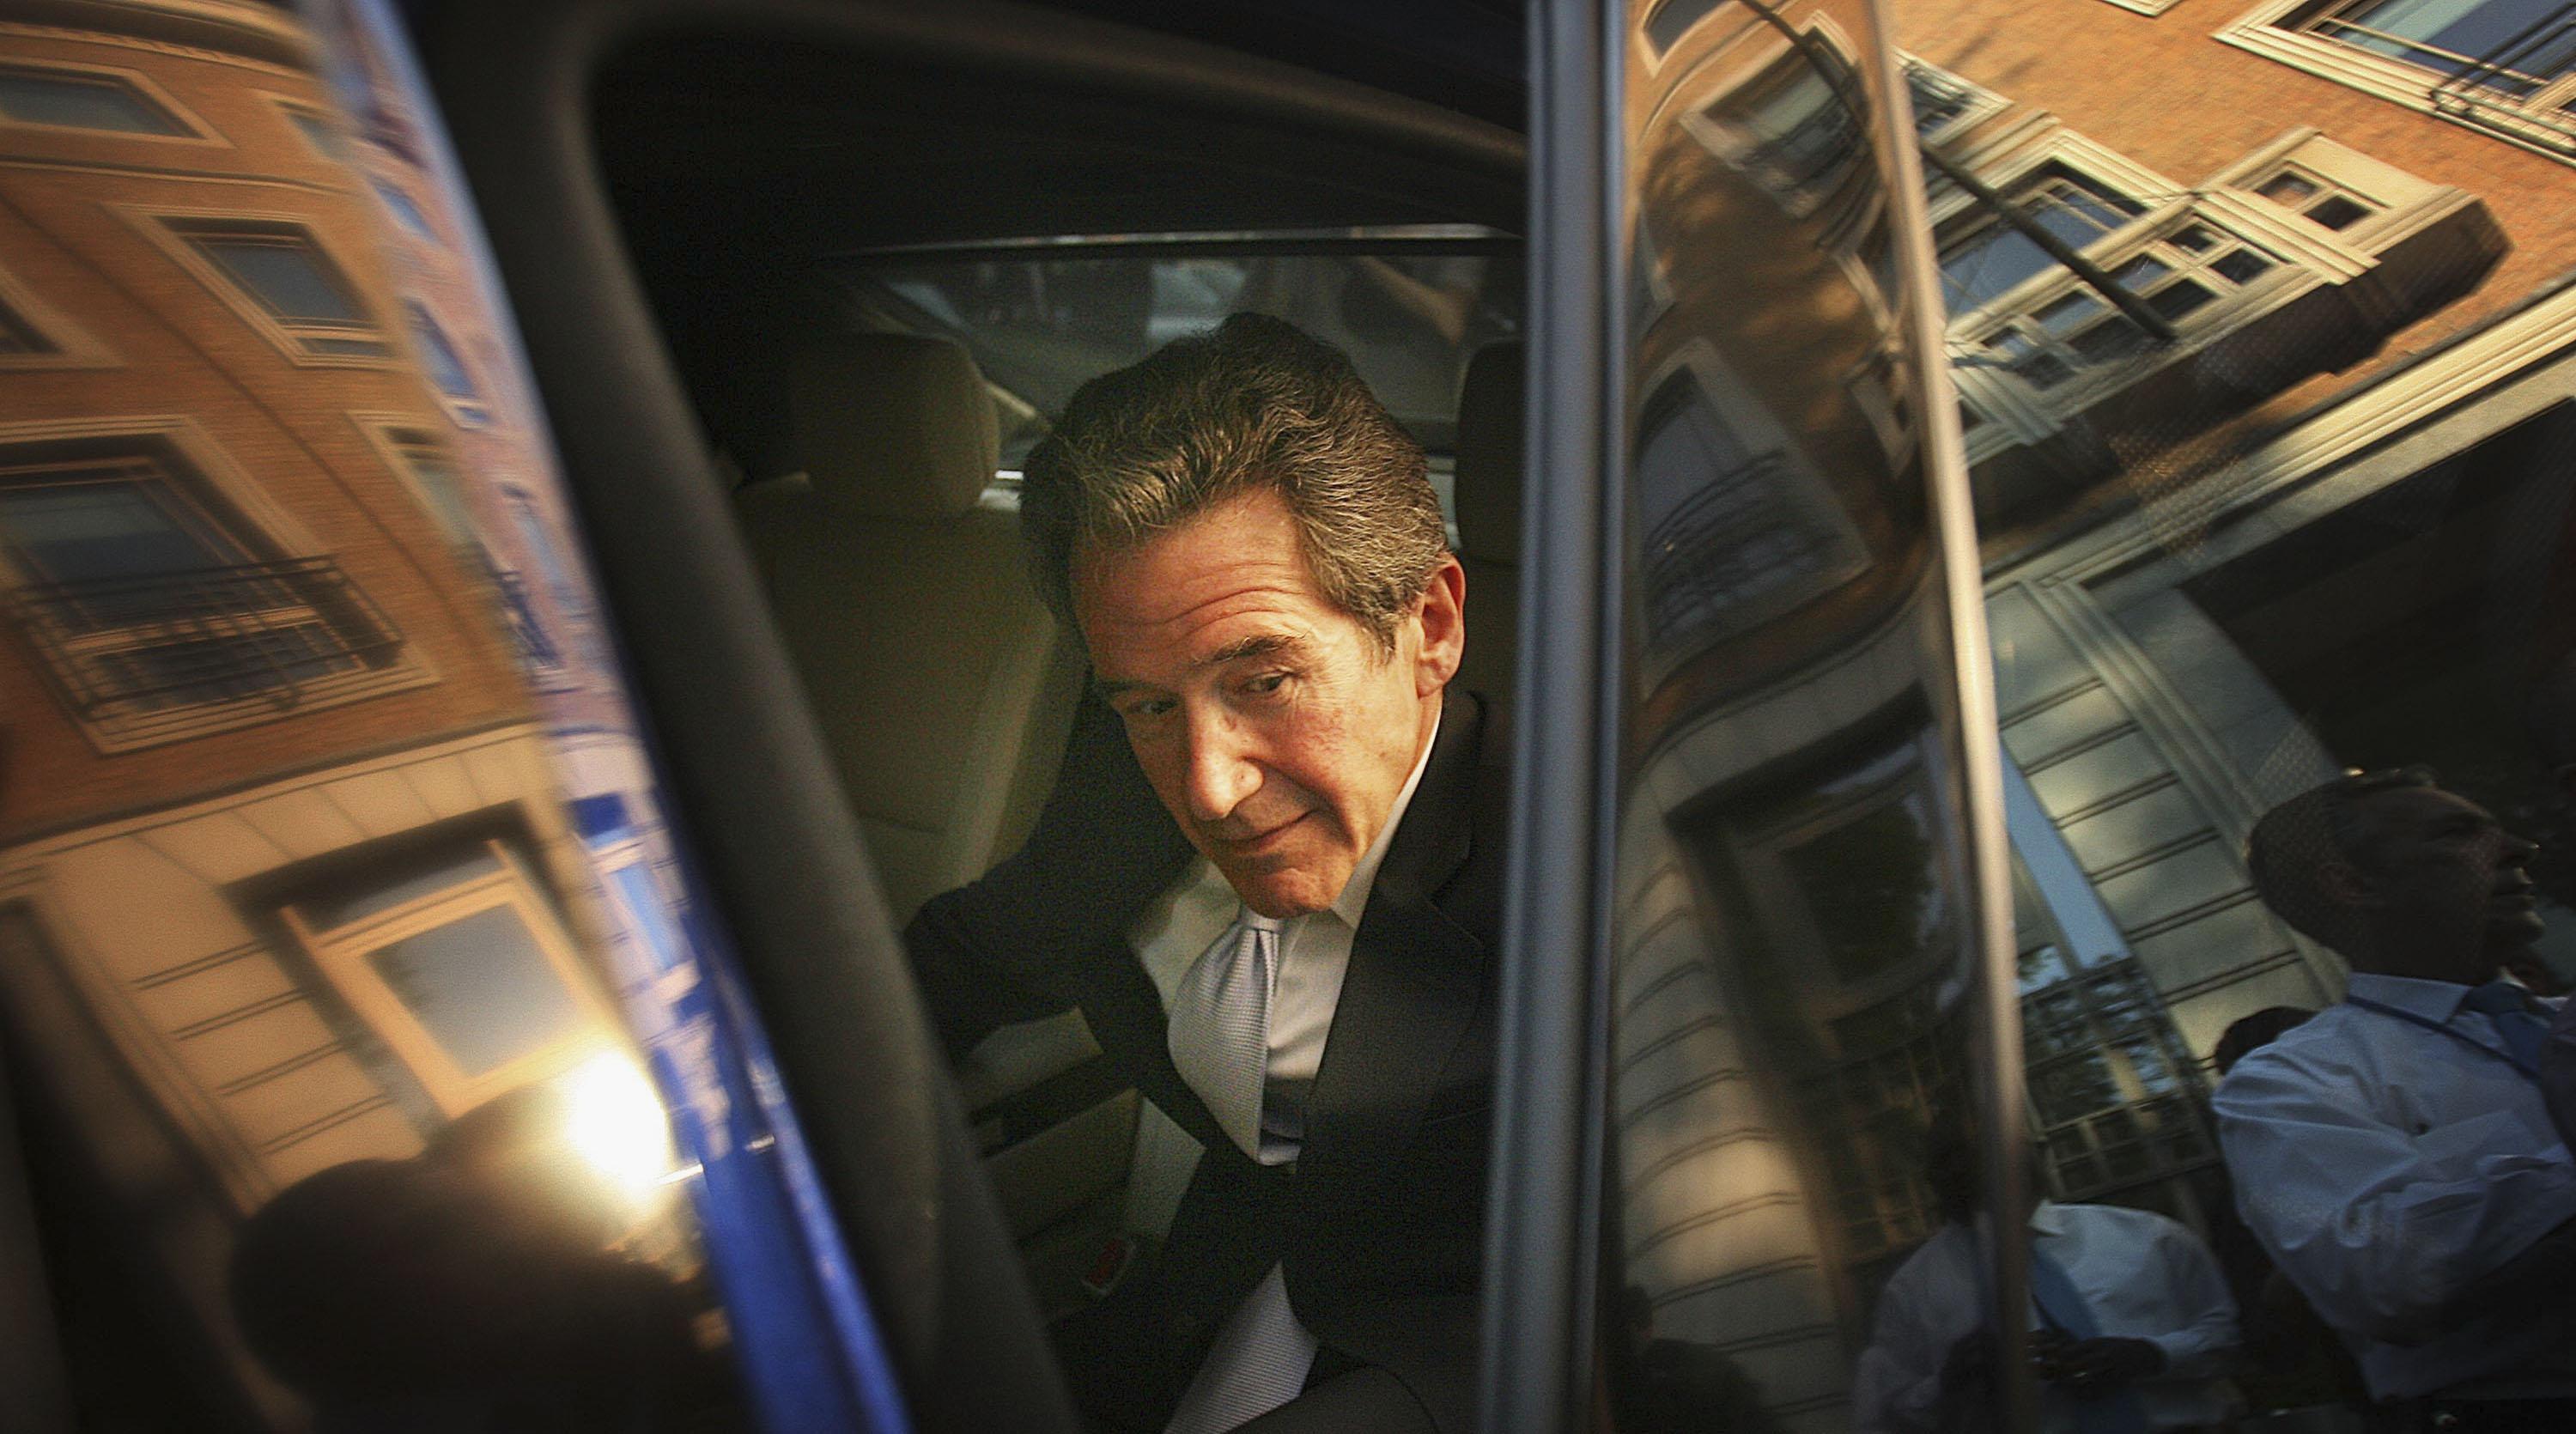 Former Chief Executive of British Petroleum Lord Browne